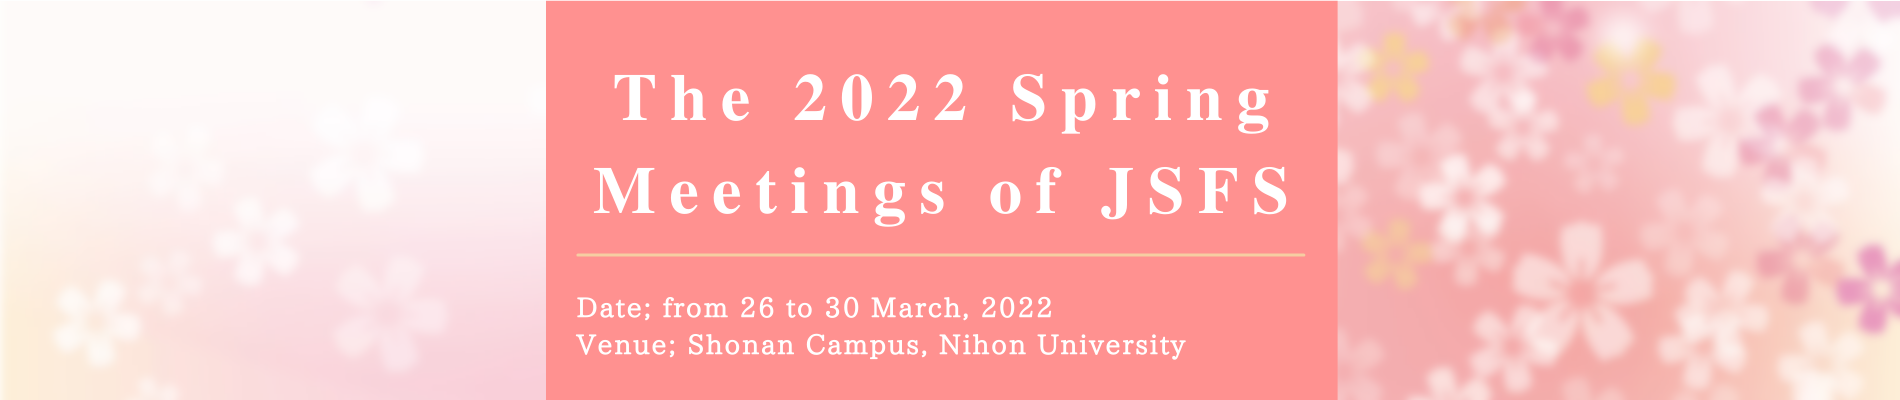 The 2022 Spring Meetings of JSFS